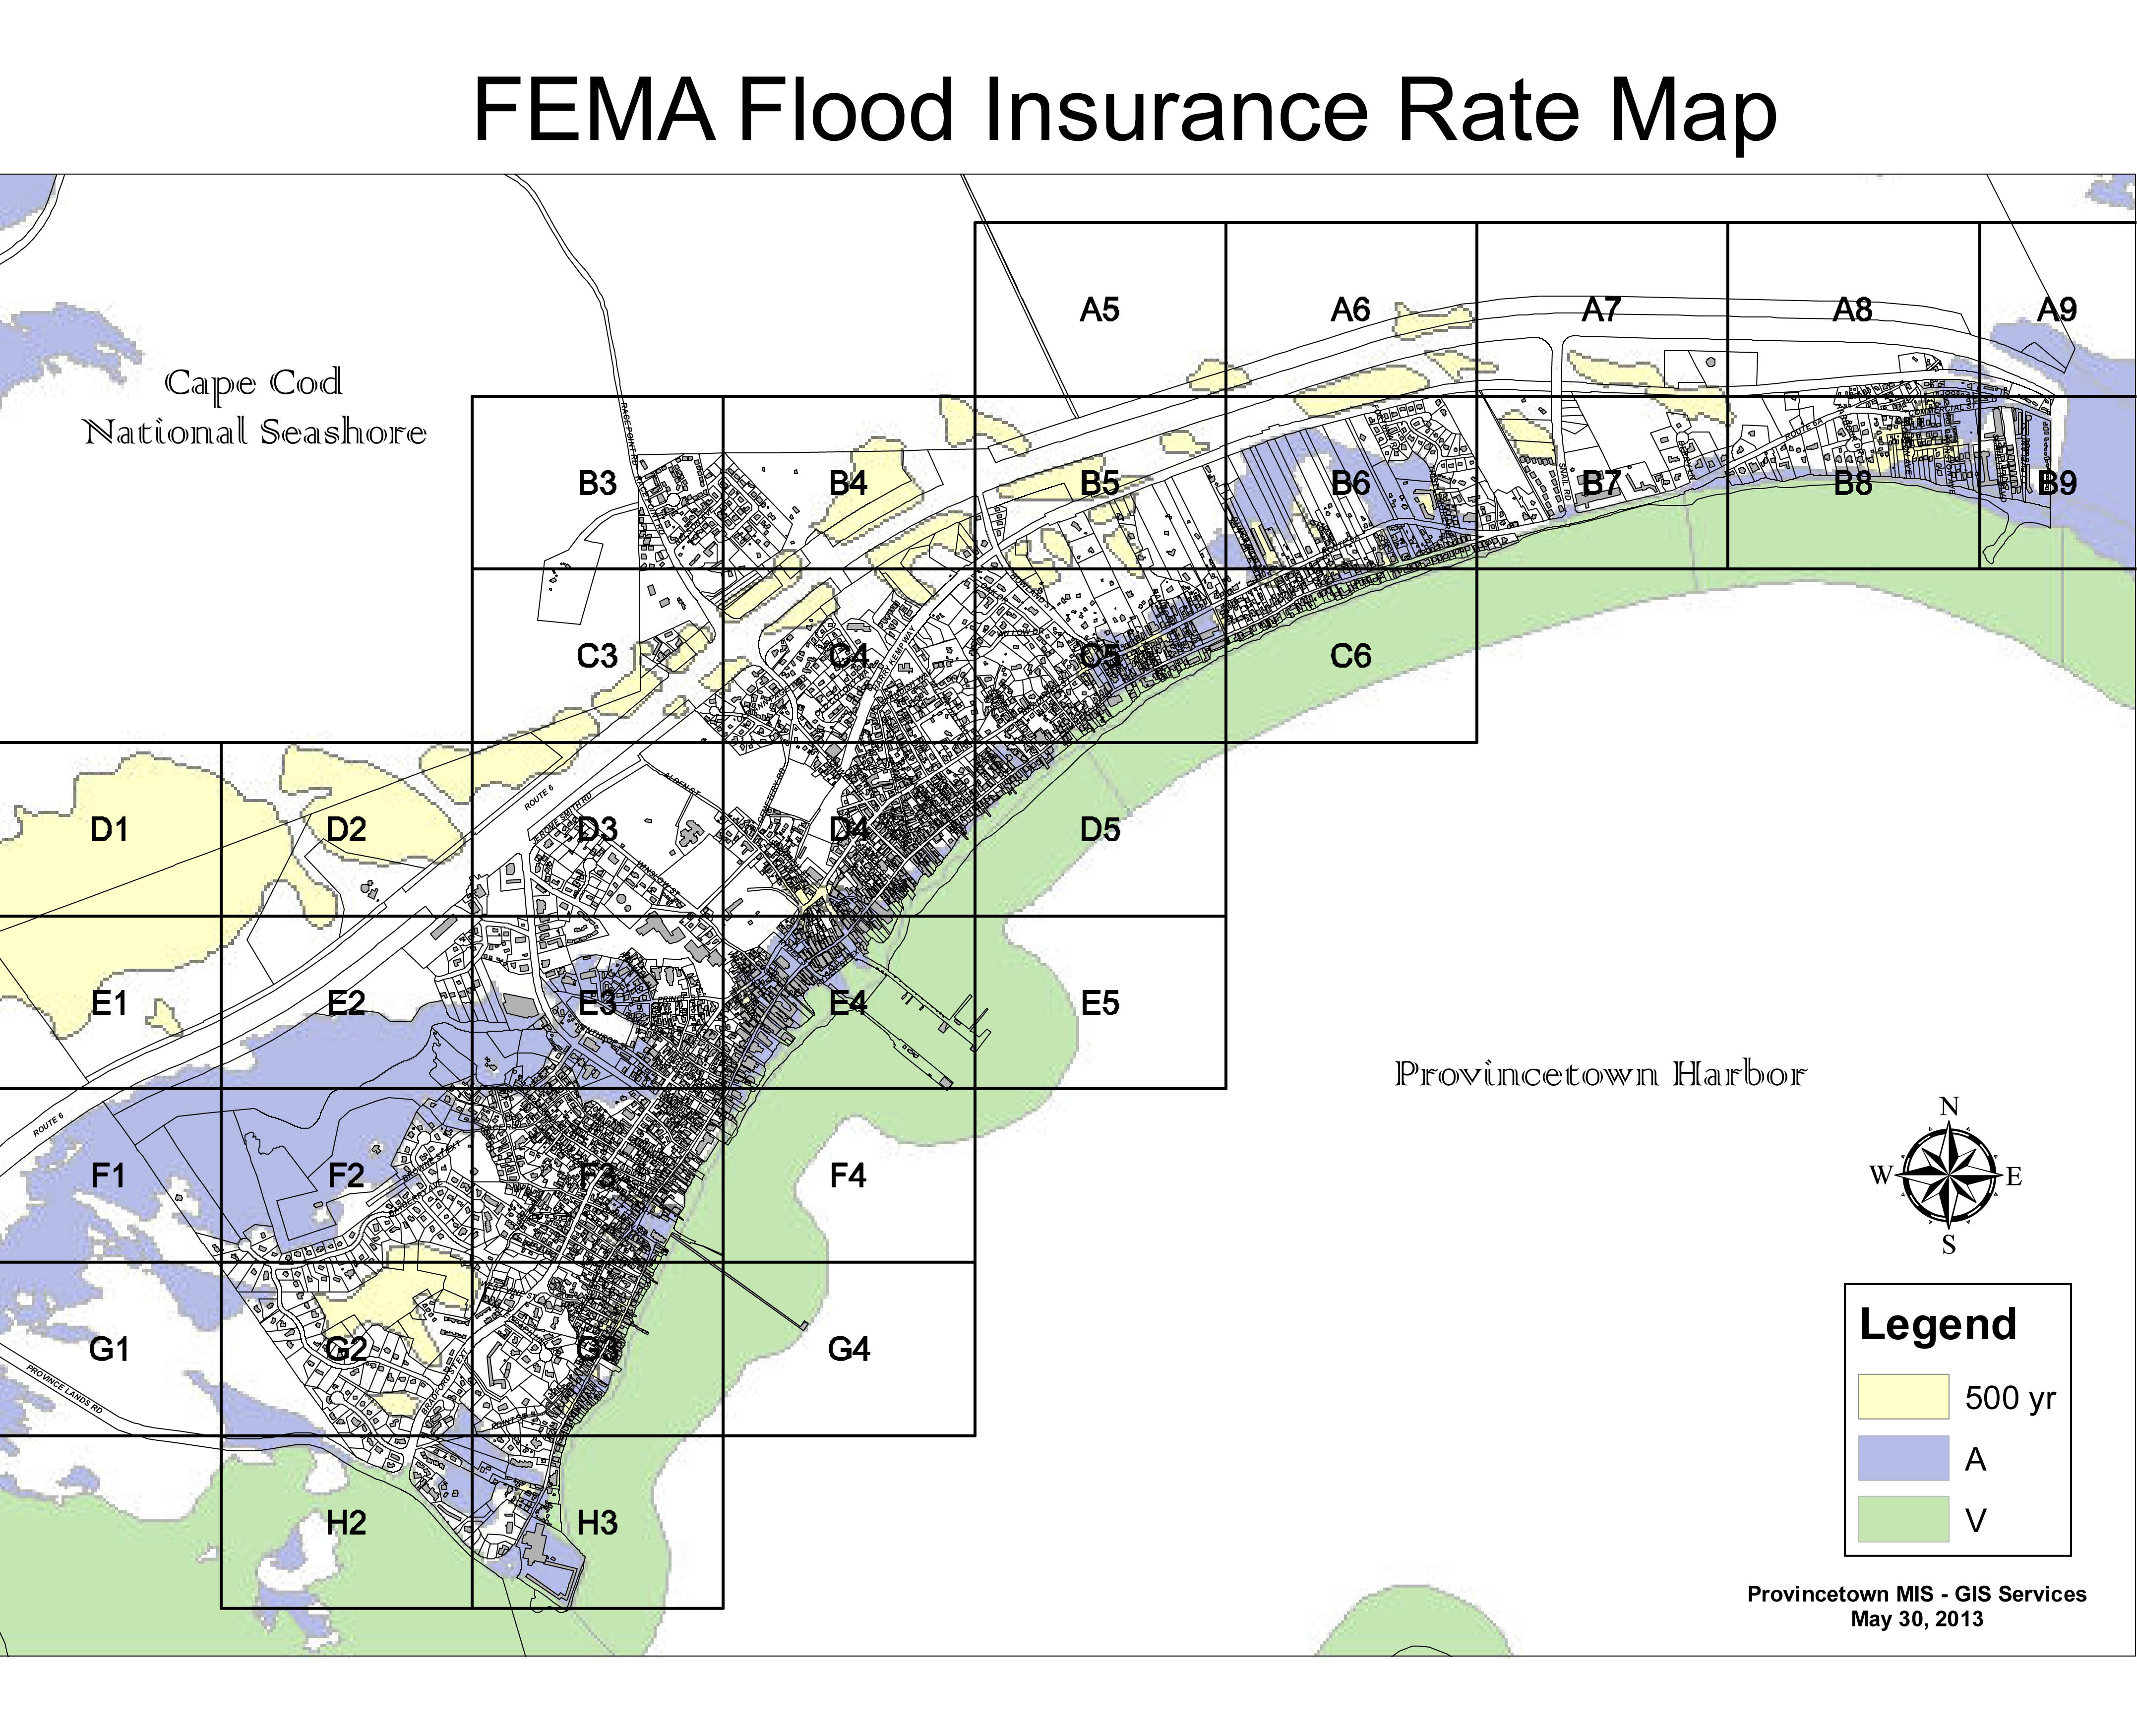 Clickable FEMA Flood Insurance Rate Map